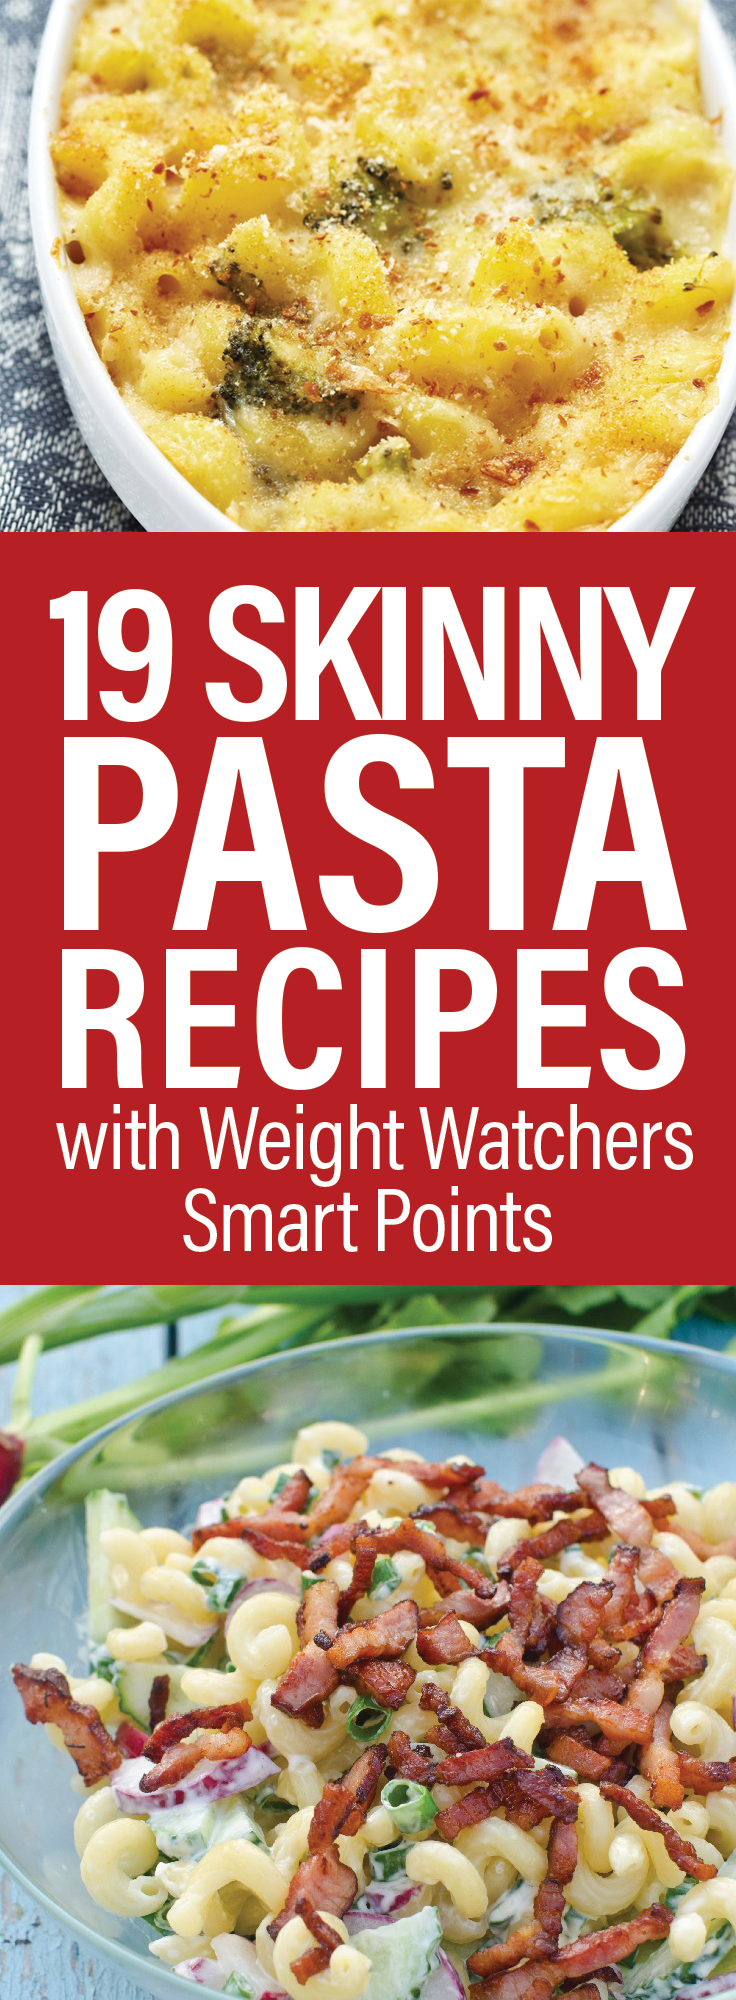 weight watchers smart points pdf